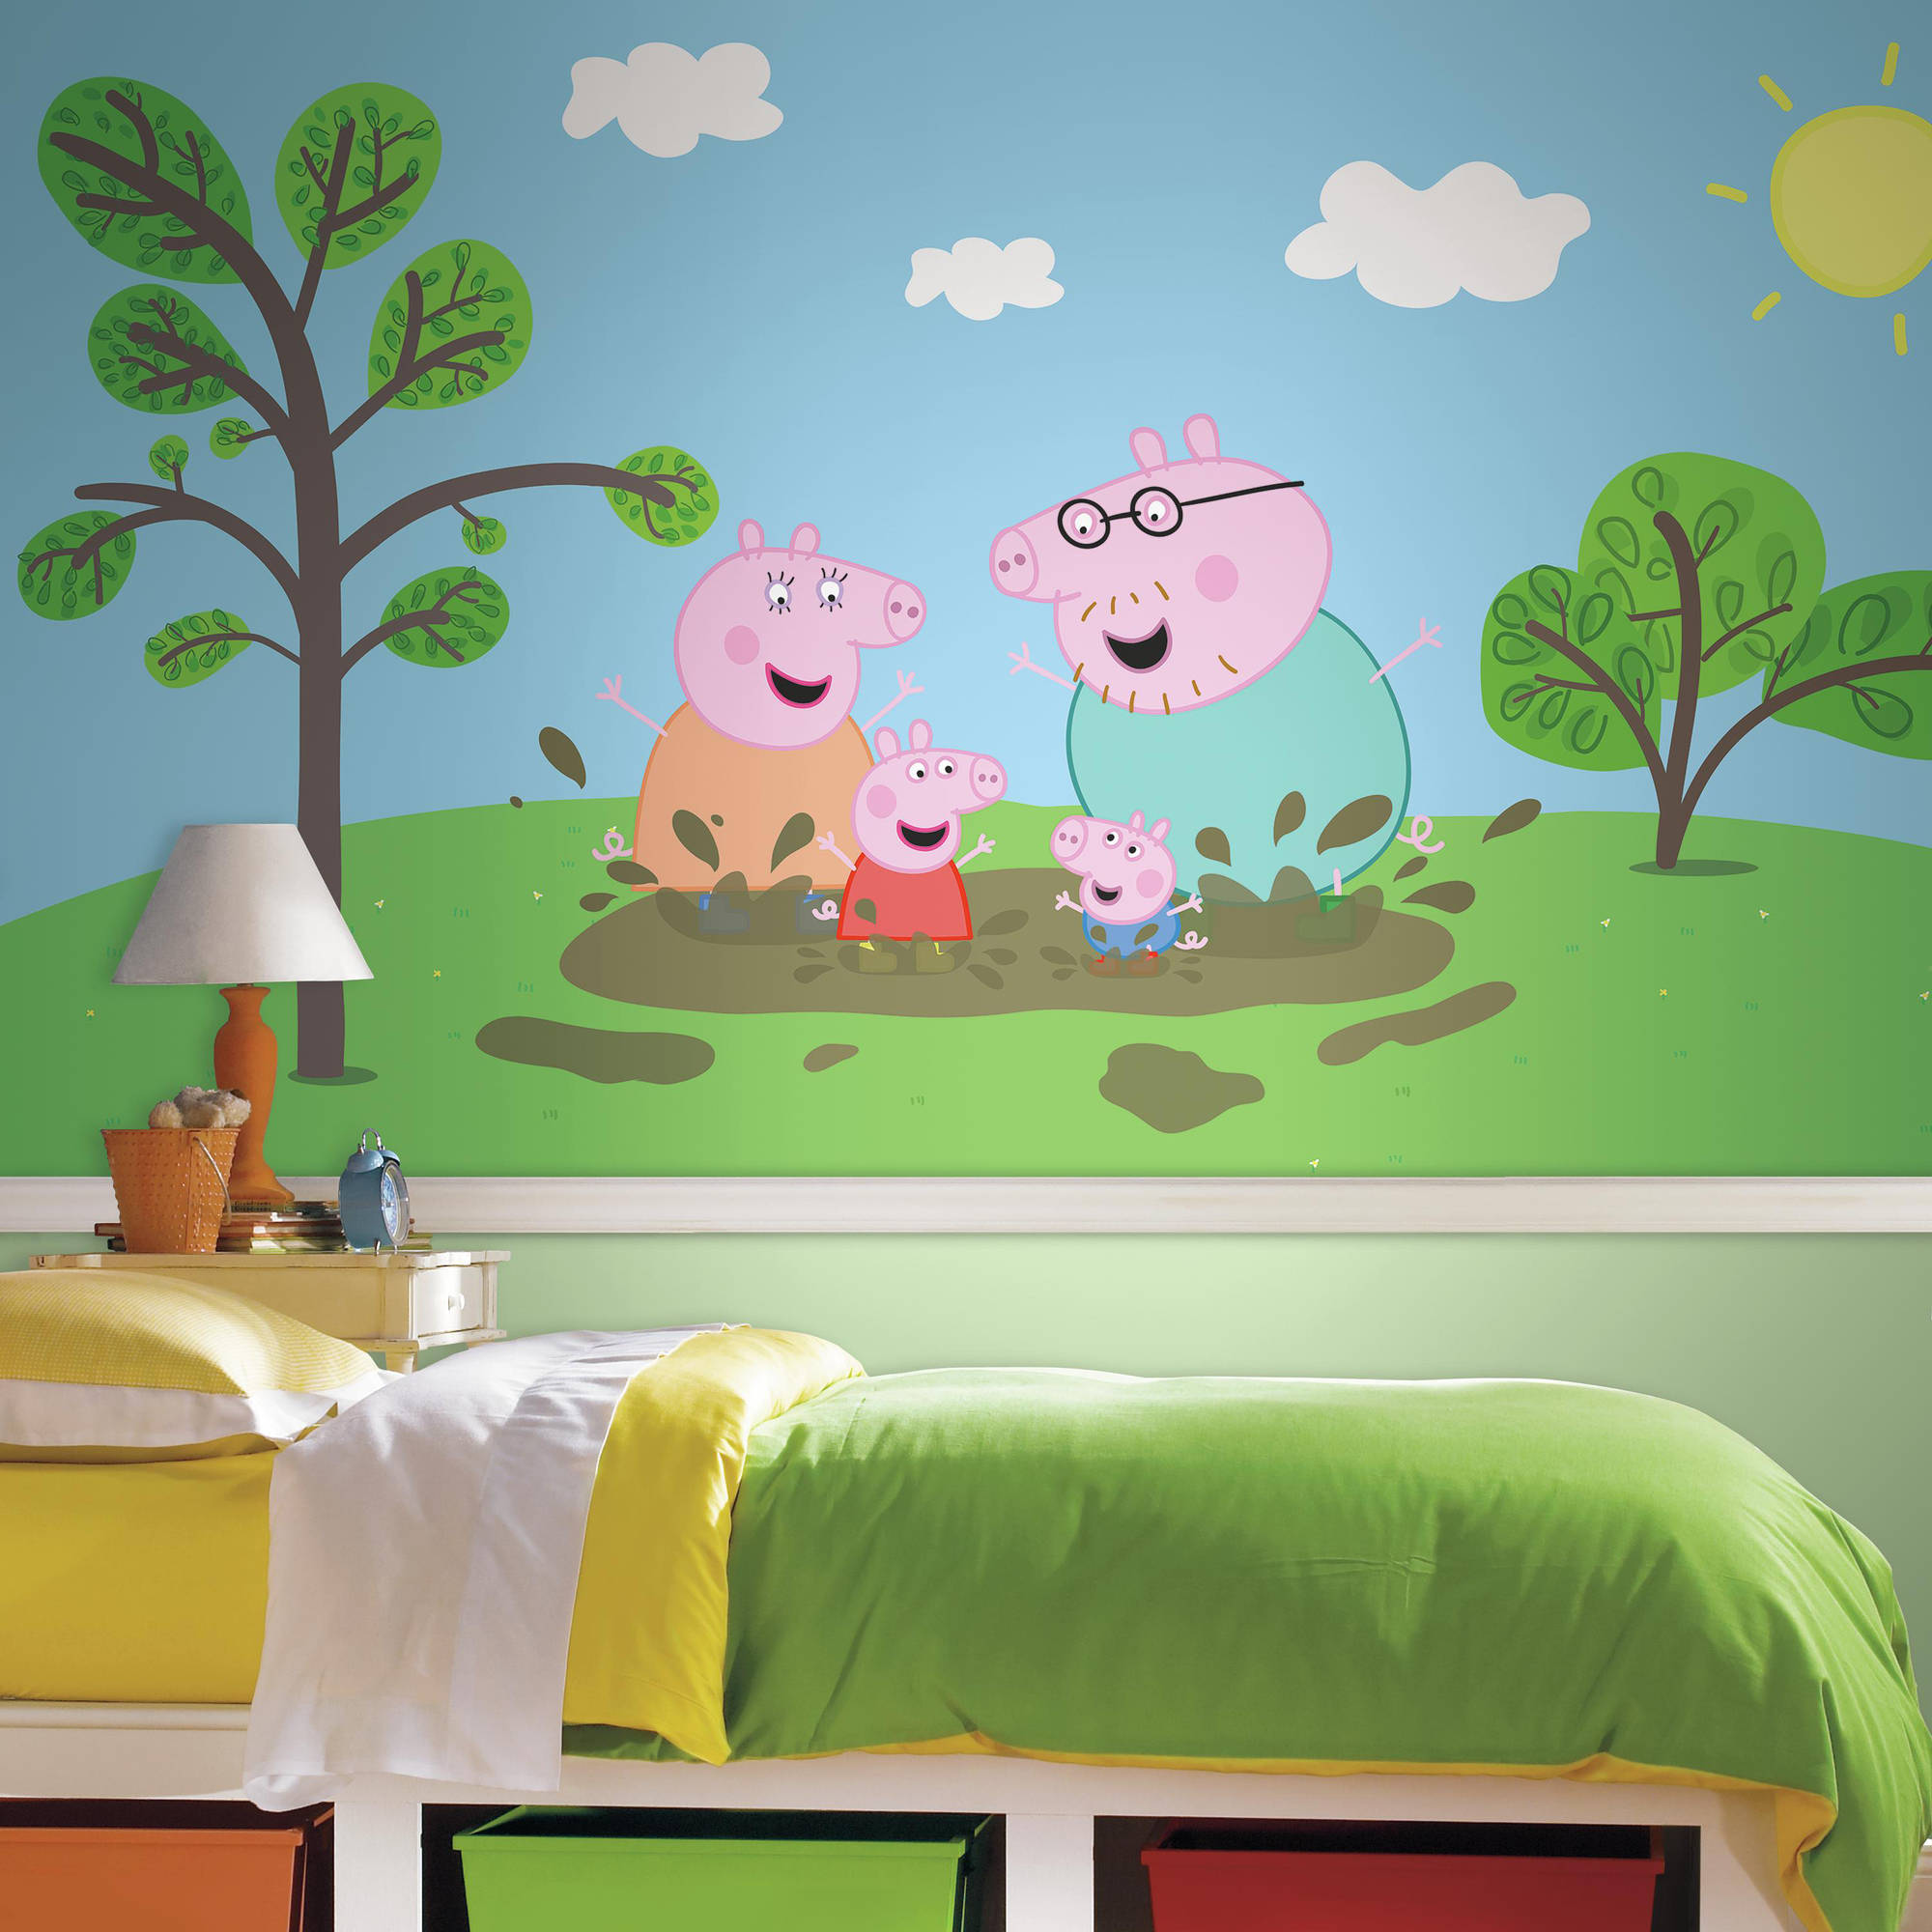 RoomMates Decor Peppa the Pig XL Chair Rail Prepasted Mural, 6' x 10.5', Ultra-Strippable